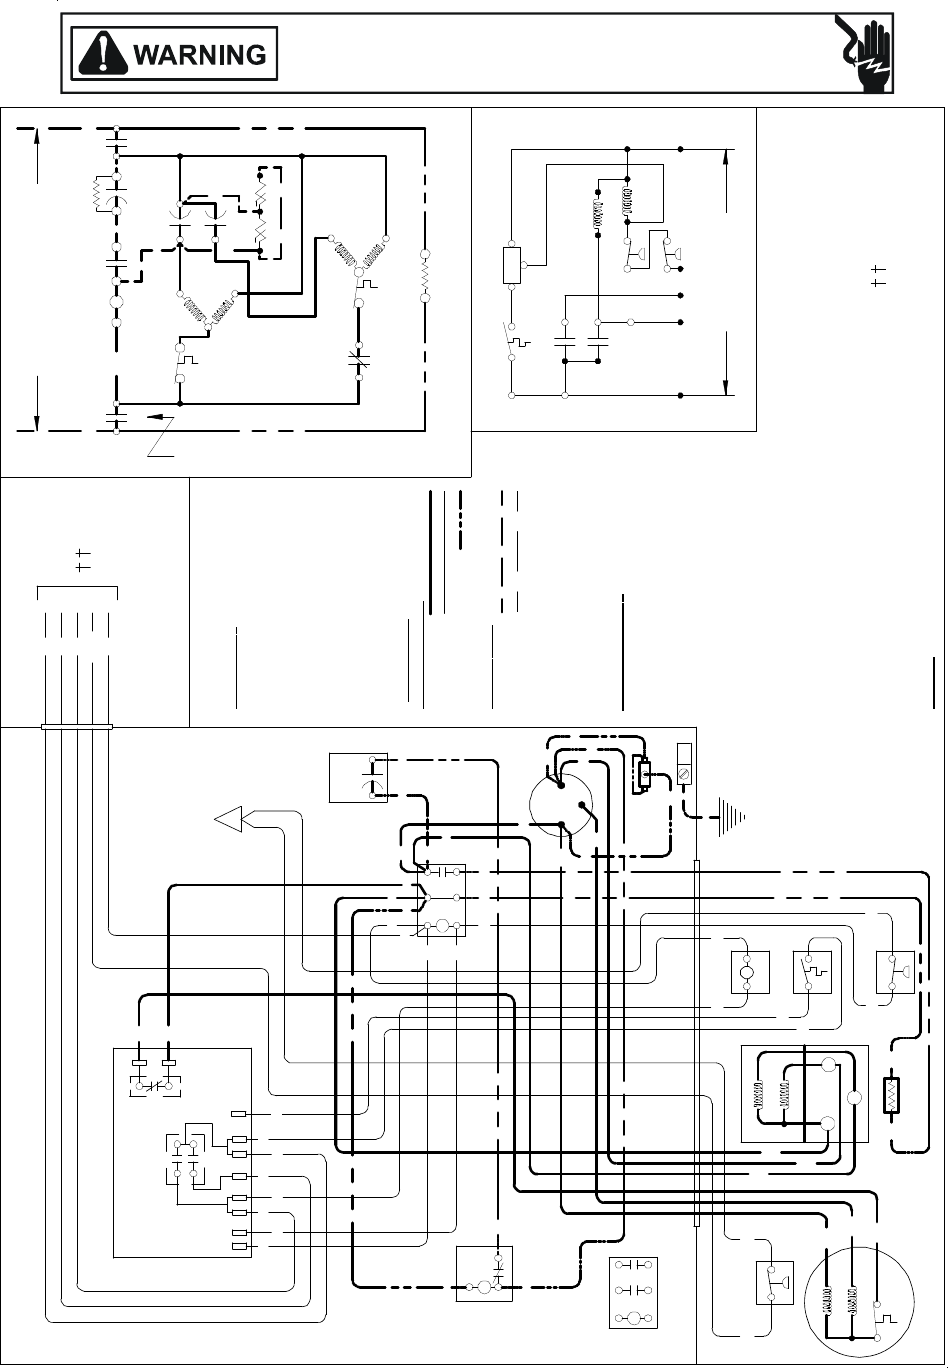 7e6u6 Rheem Model Rgaa 125a Gas Furnace Turns also 3 Phase Heater Wiring Diagram For Trane besides HVAC Manuals moreover Blower Motor For Intertherm Electric Furnace additionally Package Boiler Diagram. on rheem heat pump parts diagram